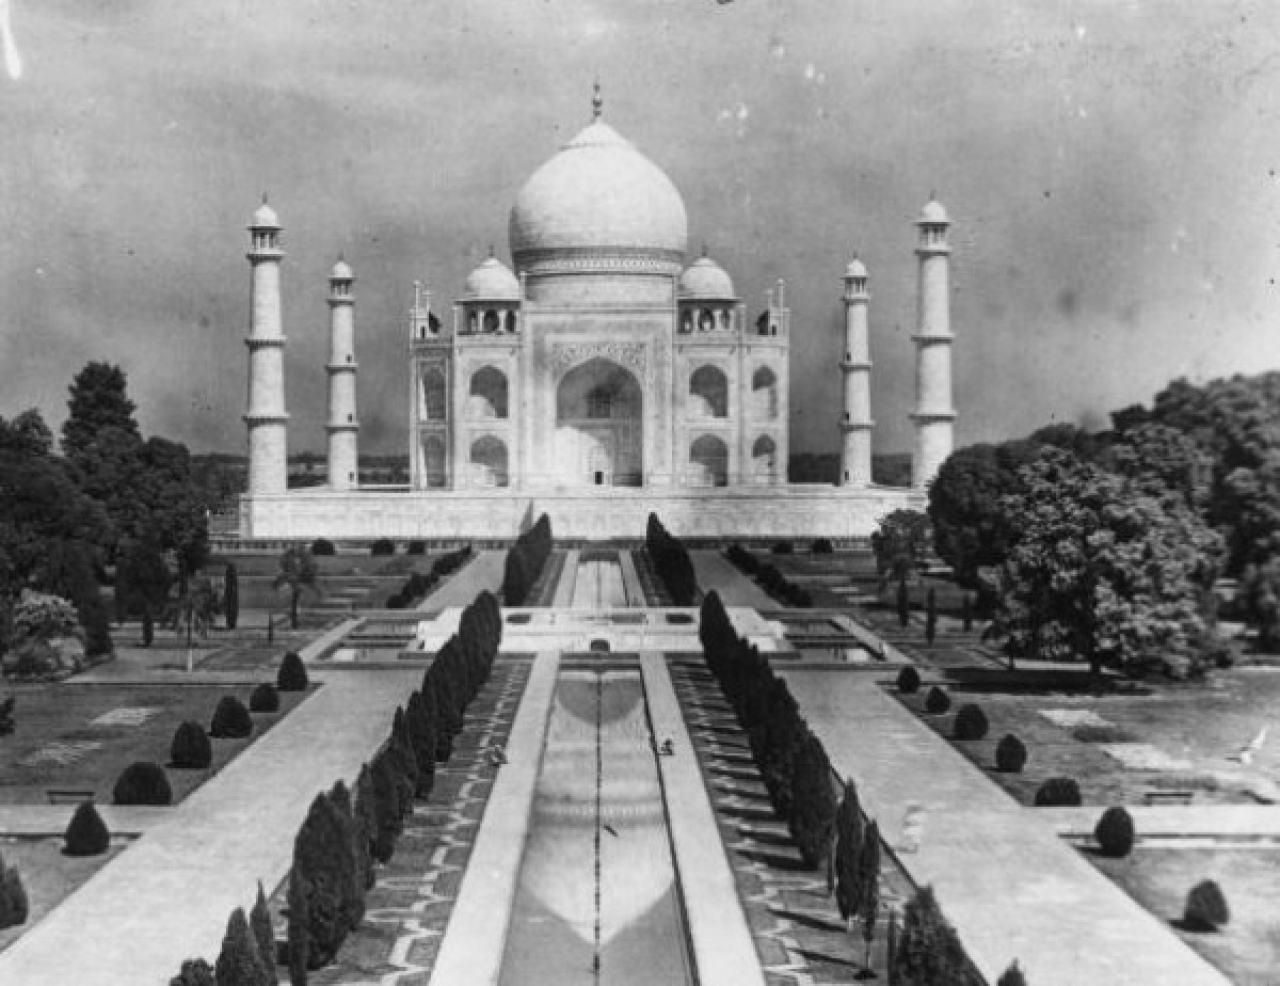 <p>The Taj Mahal (built 1632-1654) at Agra, in memory of Mumtaz Mahal, wife of Shah Jahan. (J. A. Hampton/Topical Press Agency/Getty Images)</p>